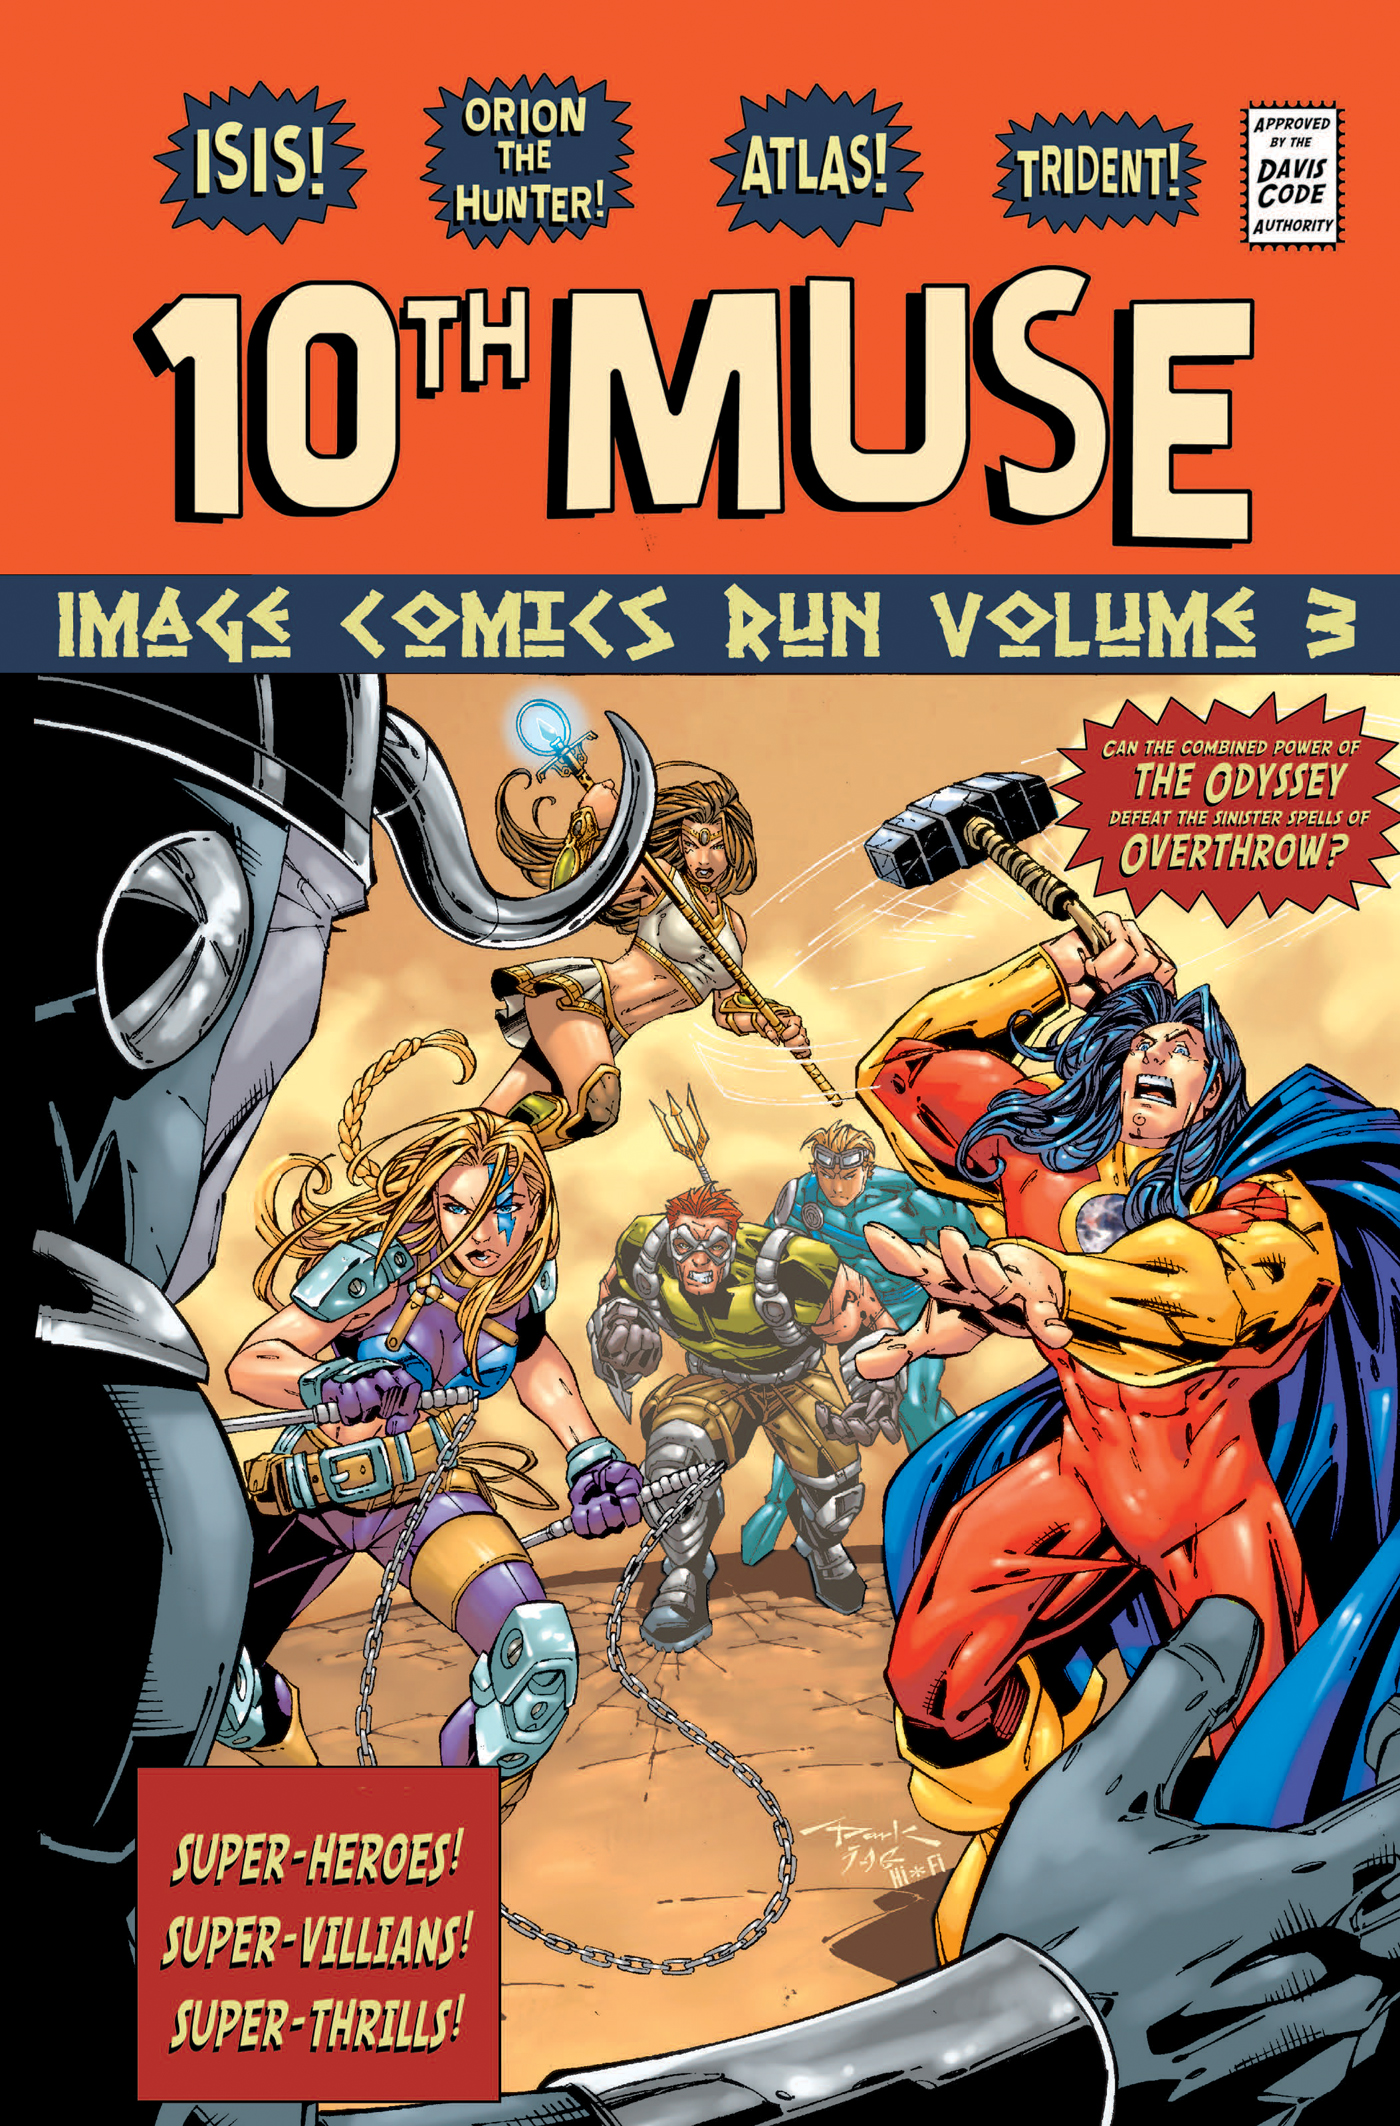 10th Muse: The Image Comics Run Volume 3 By: Marv Wolfman